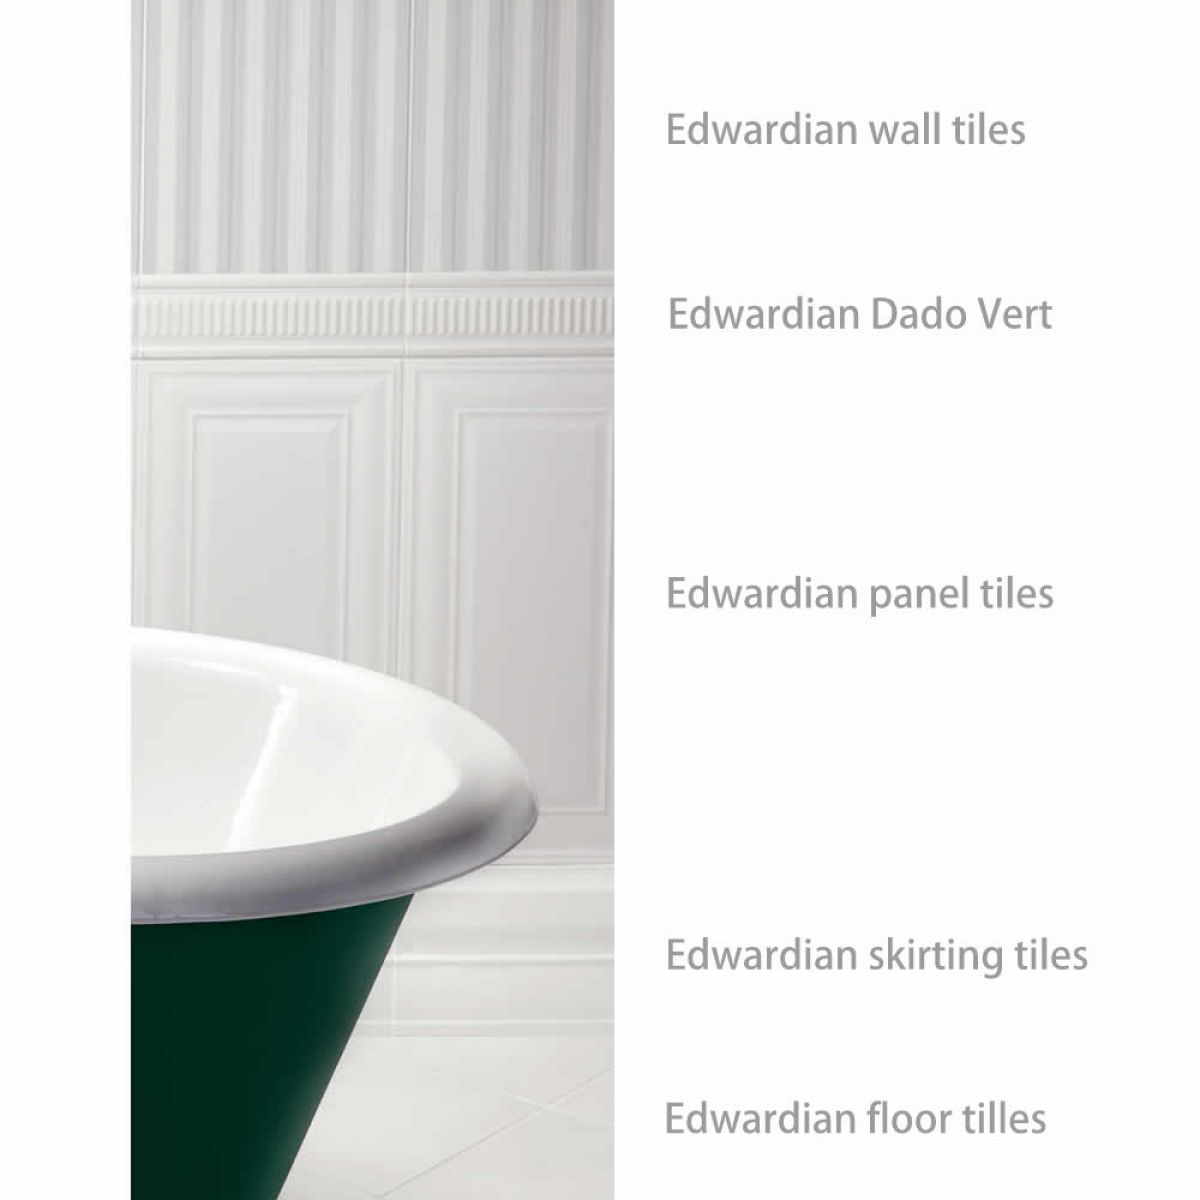 Imperial bathrooms edwardian dado vert tile uk bathrooms imperial bathrooms edwardian dado vert tile dailygadgetfo Images